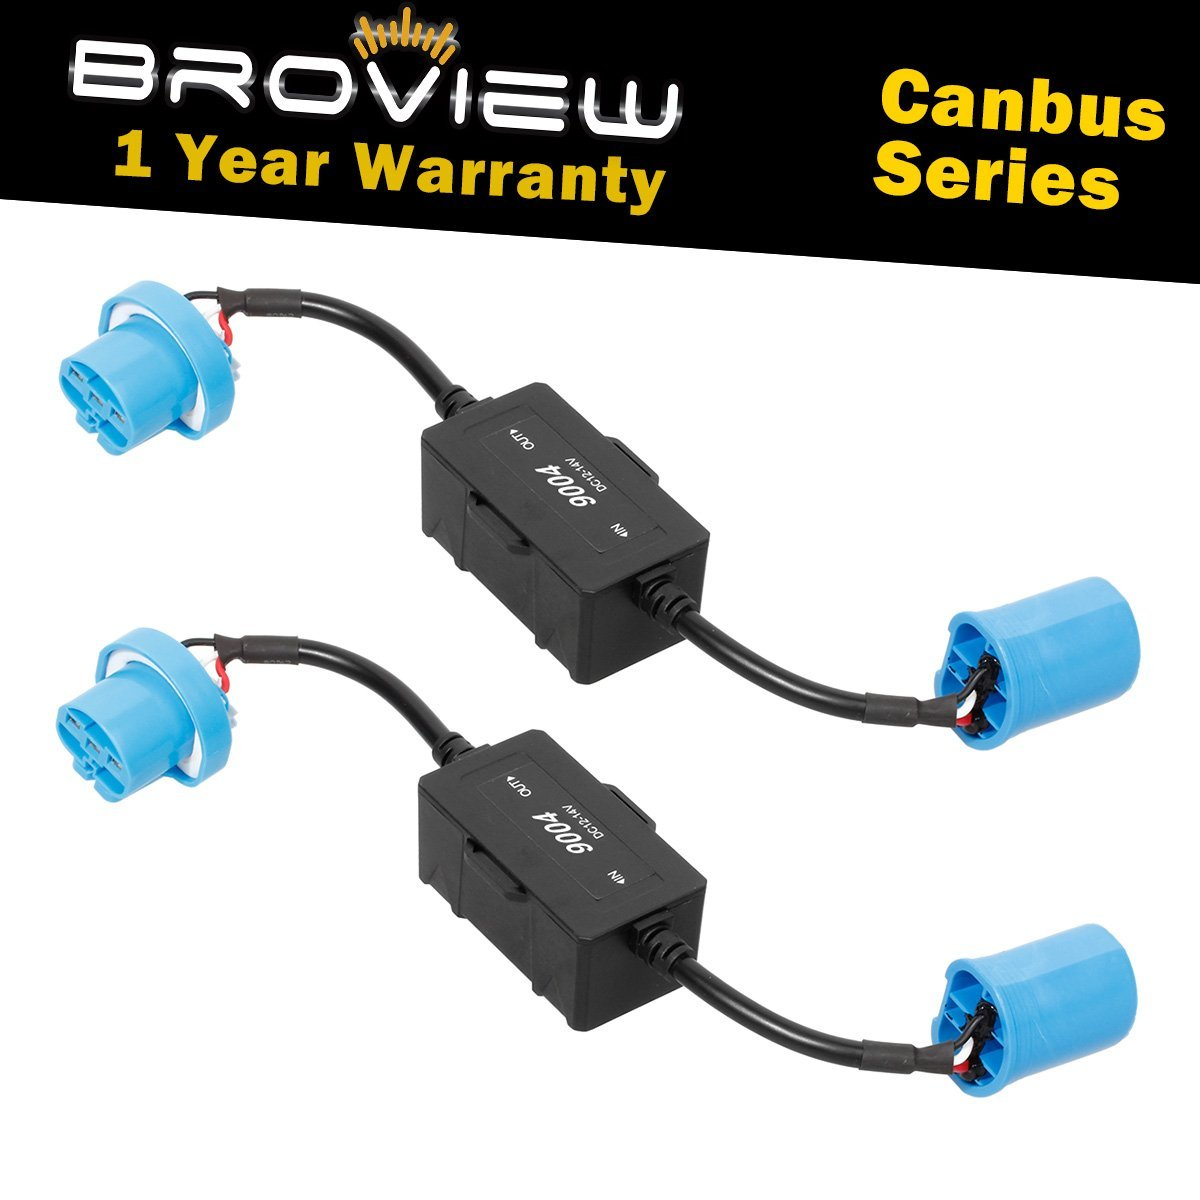 BROVIEW Canbus Series -For 9004 HB1 LED Headlights Conversion Kit Anti Flickering -Wire Haress Load Resistor Decorder Canbus Error Free Computer Warning Canceller(2pcs/1 Pair)